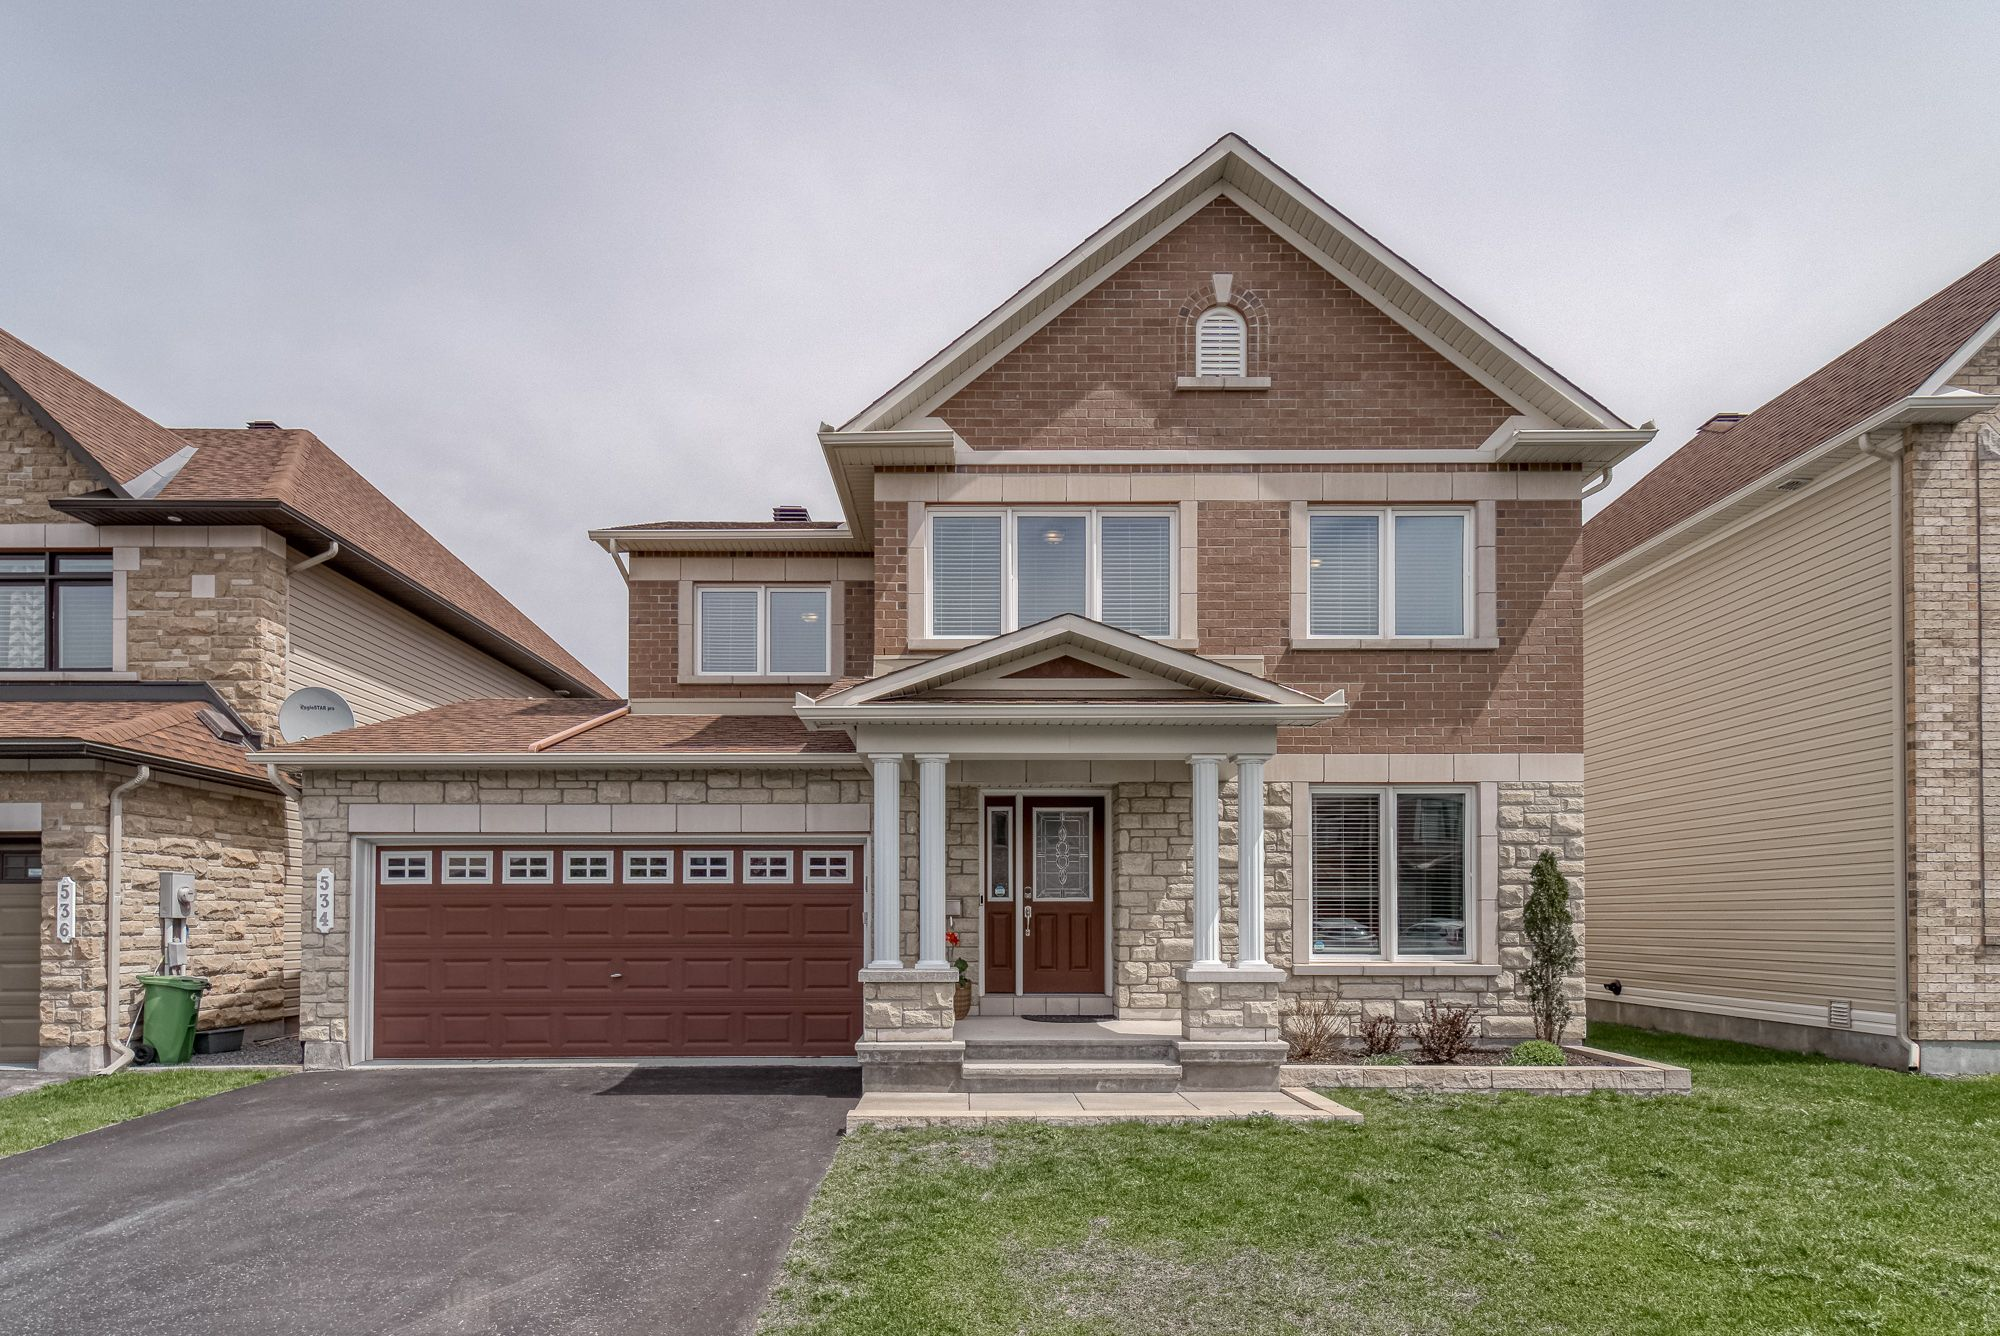 Main Photo: 534 CARACOLE WAY in Ottawa: House for sale : MLS®# 1243666